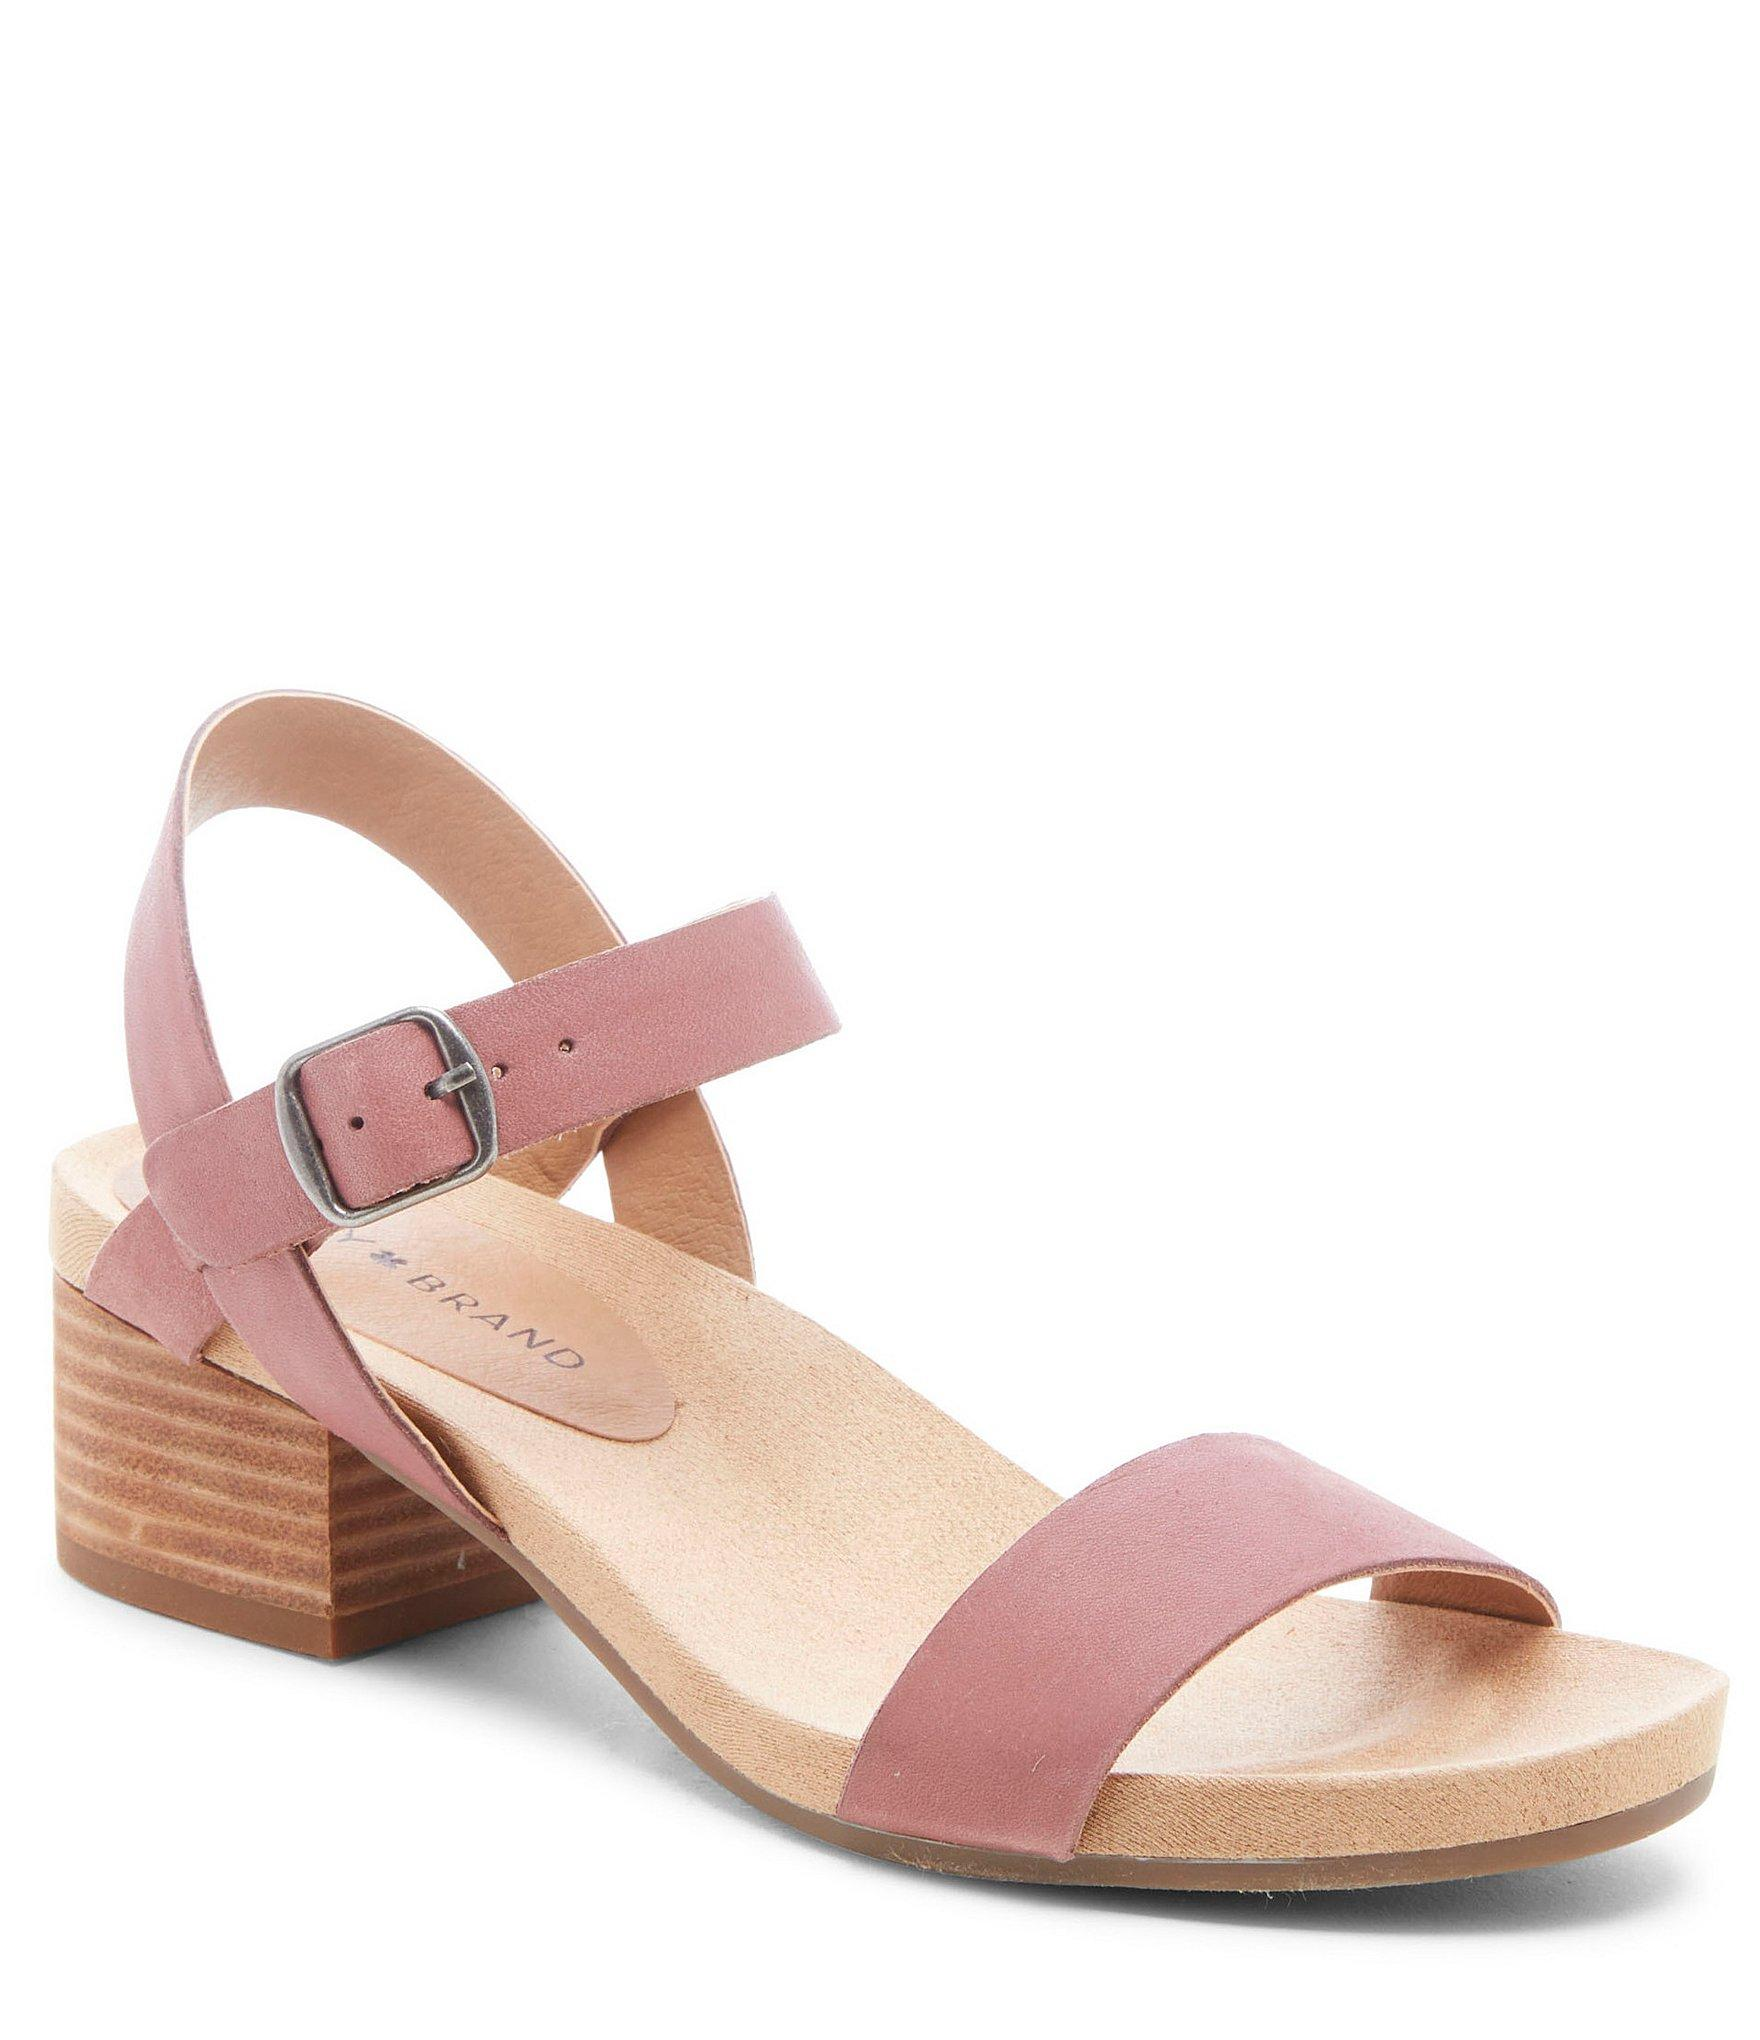 f9435276041 Lyst - Lucky Brand Pagona Leather Block Heel Sandals in Pink